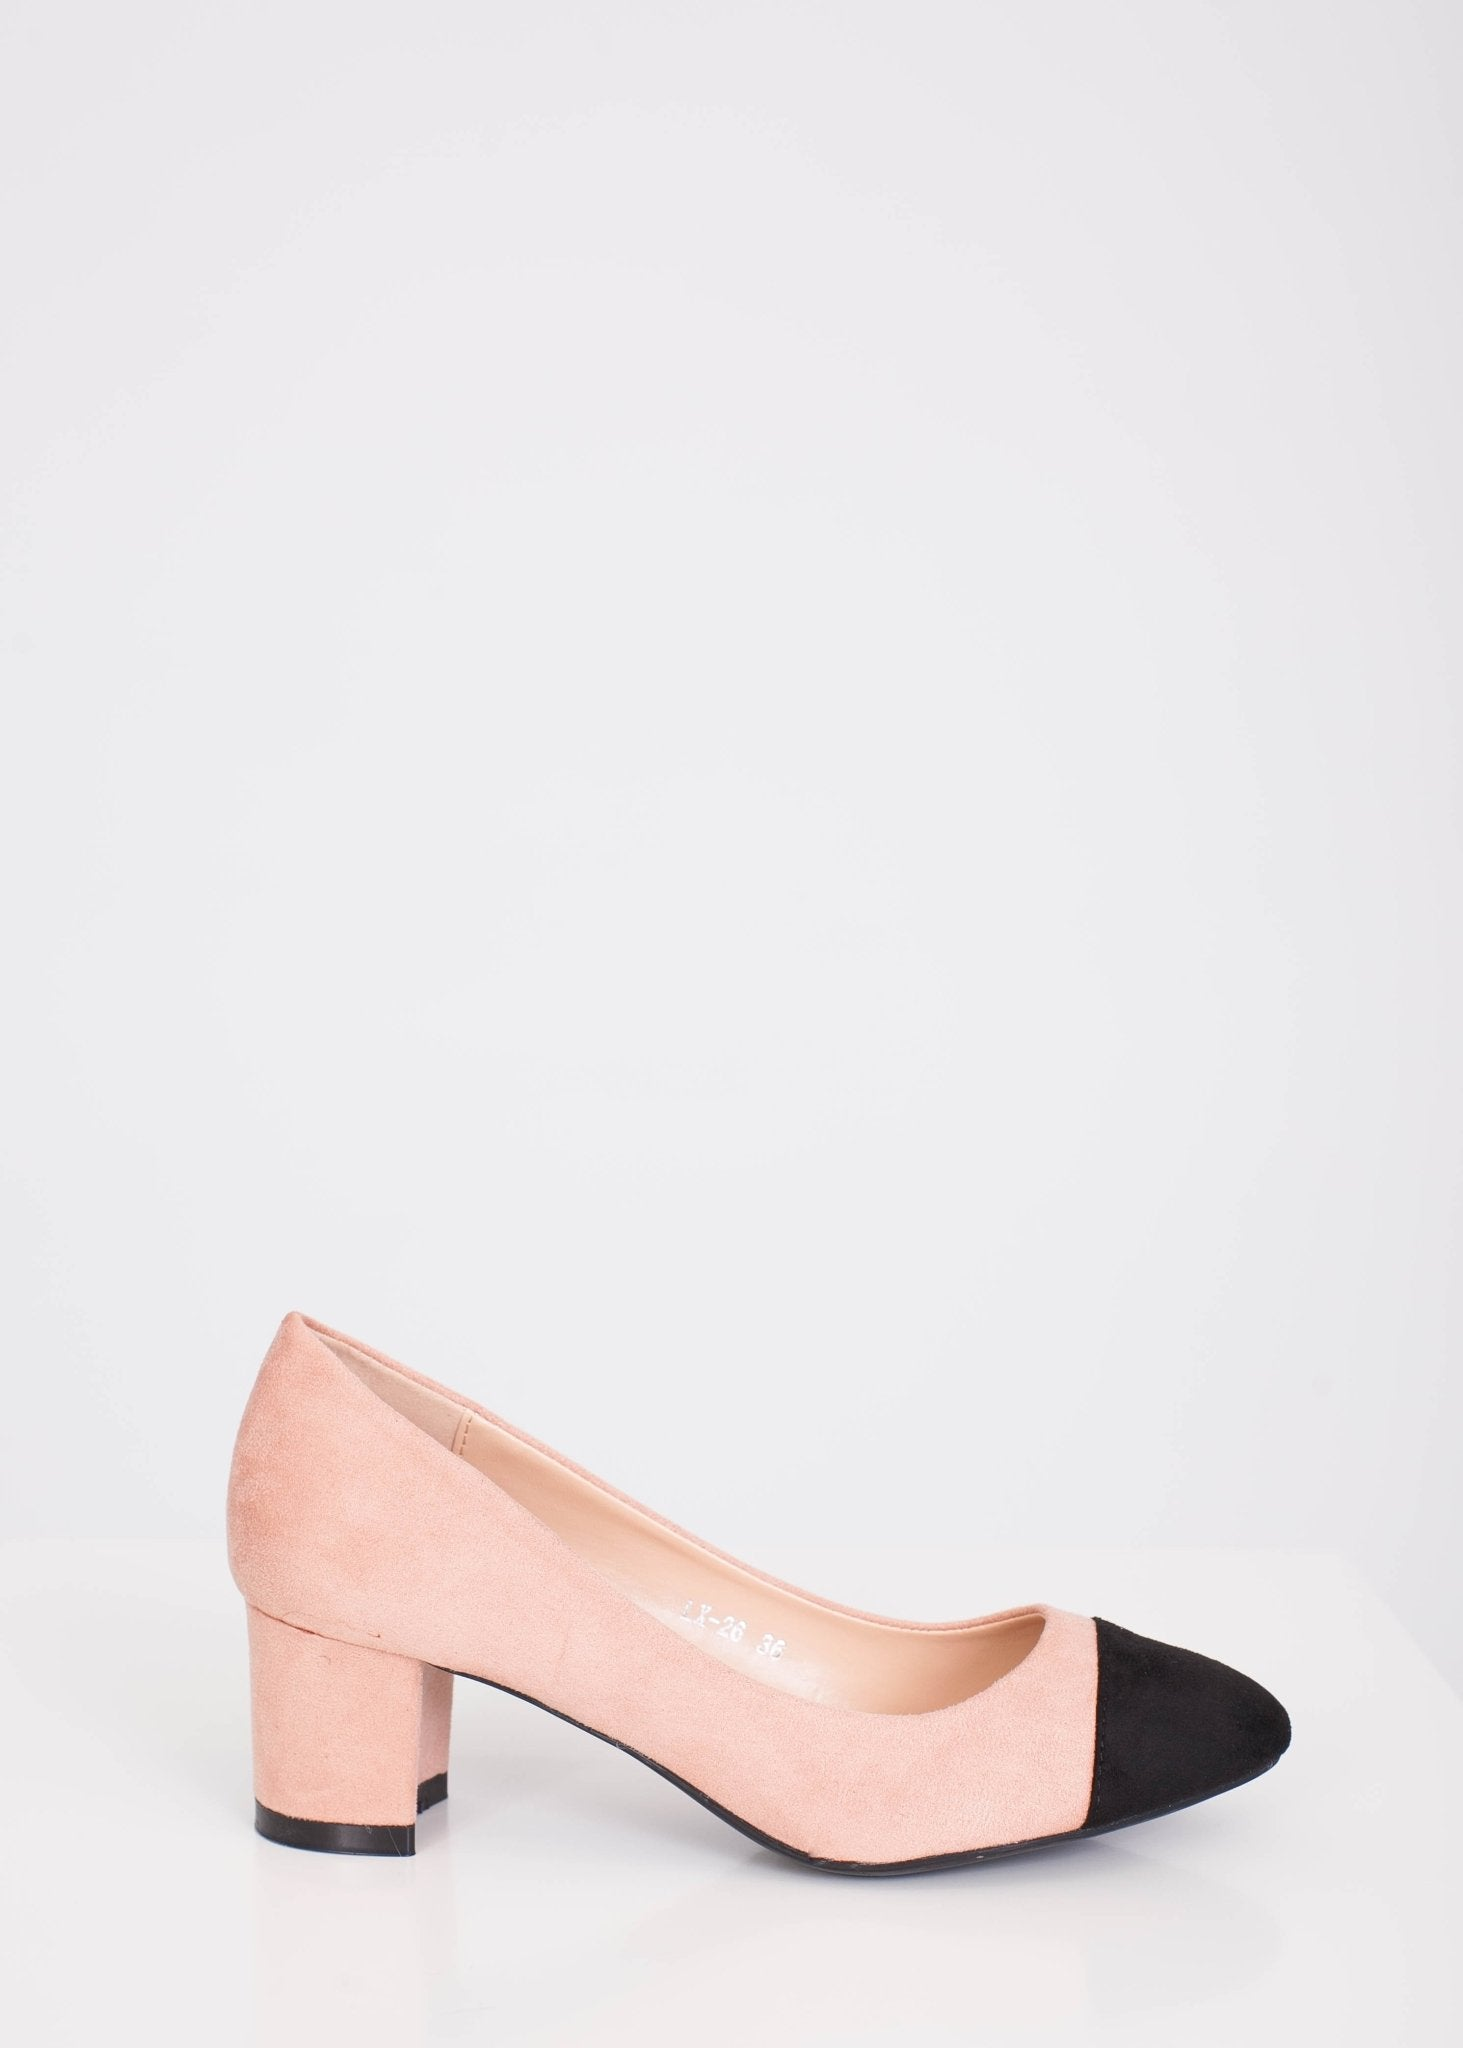 Alice Block Heel Shoes - The Walk in Wardrobe